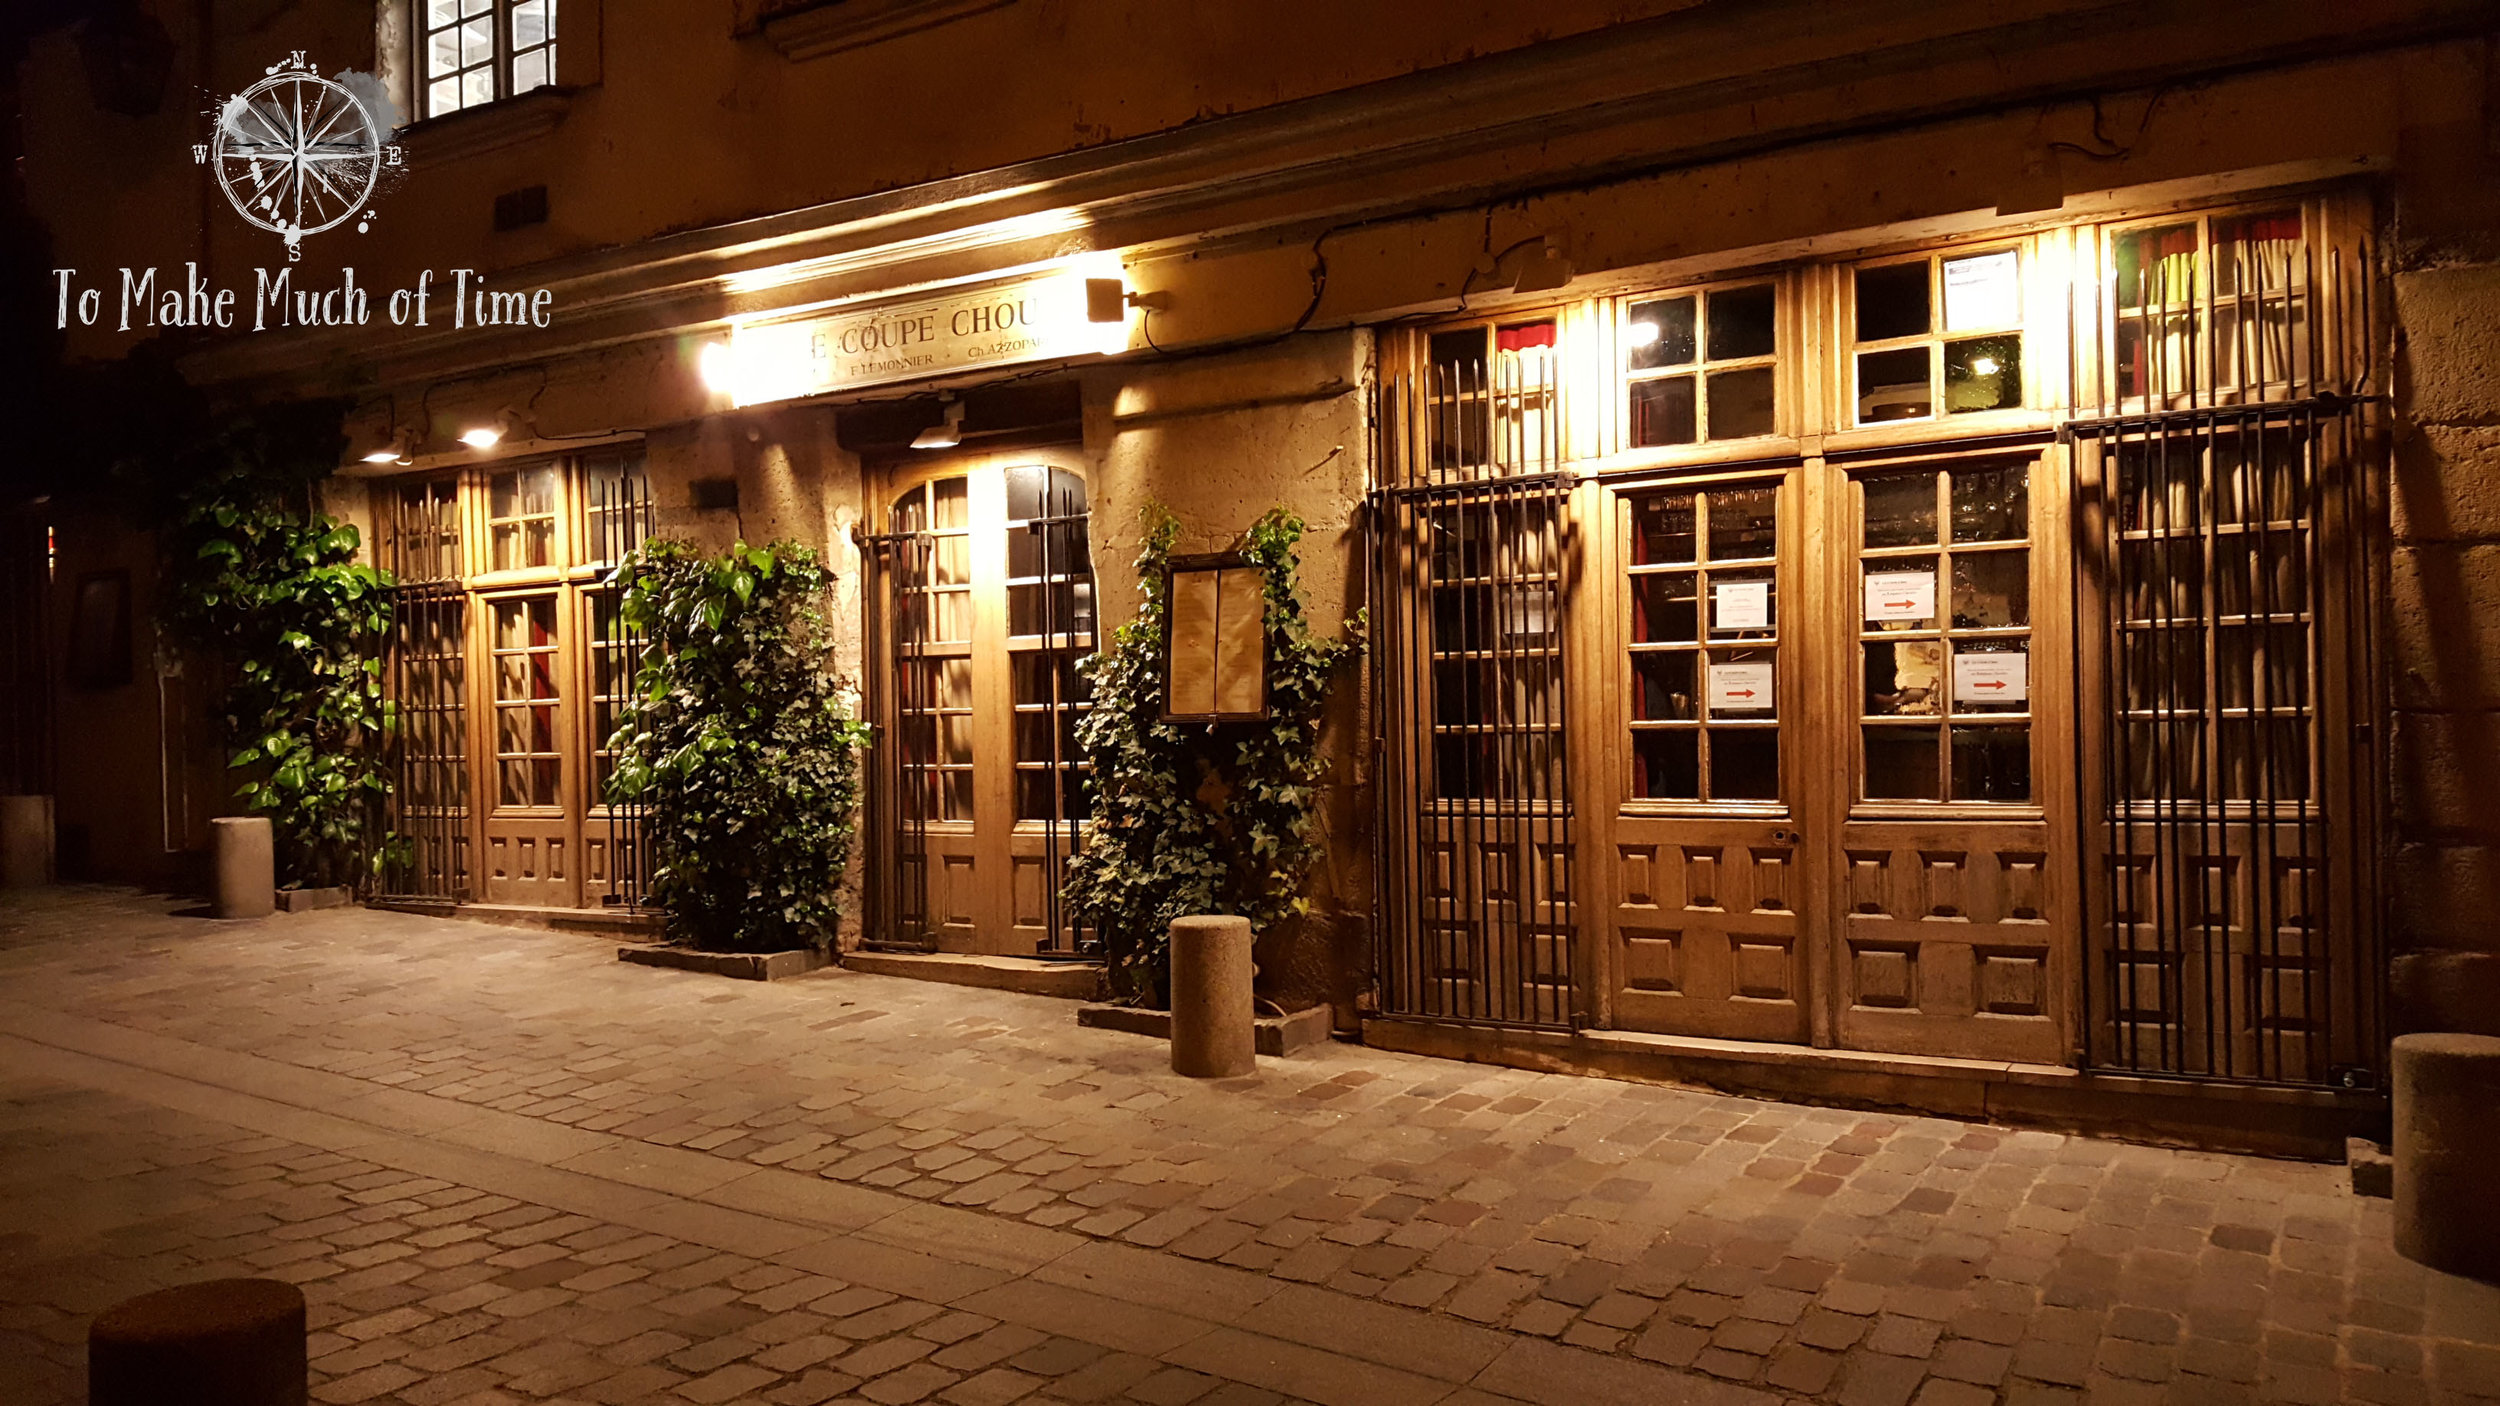 From what appears to be the entrance of Le Coupe Chou, follow the signs around to the right and look for the small unassuming door that brings you into this wonderful restaurant.